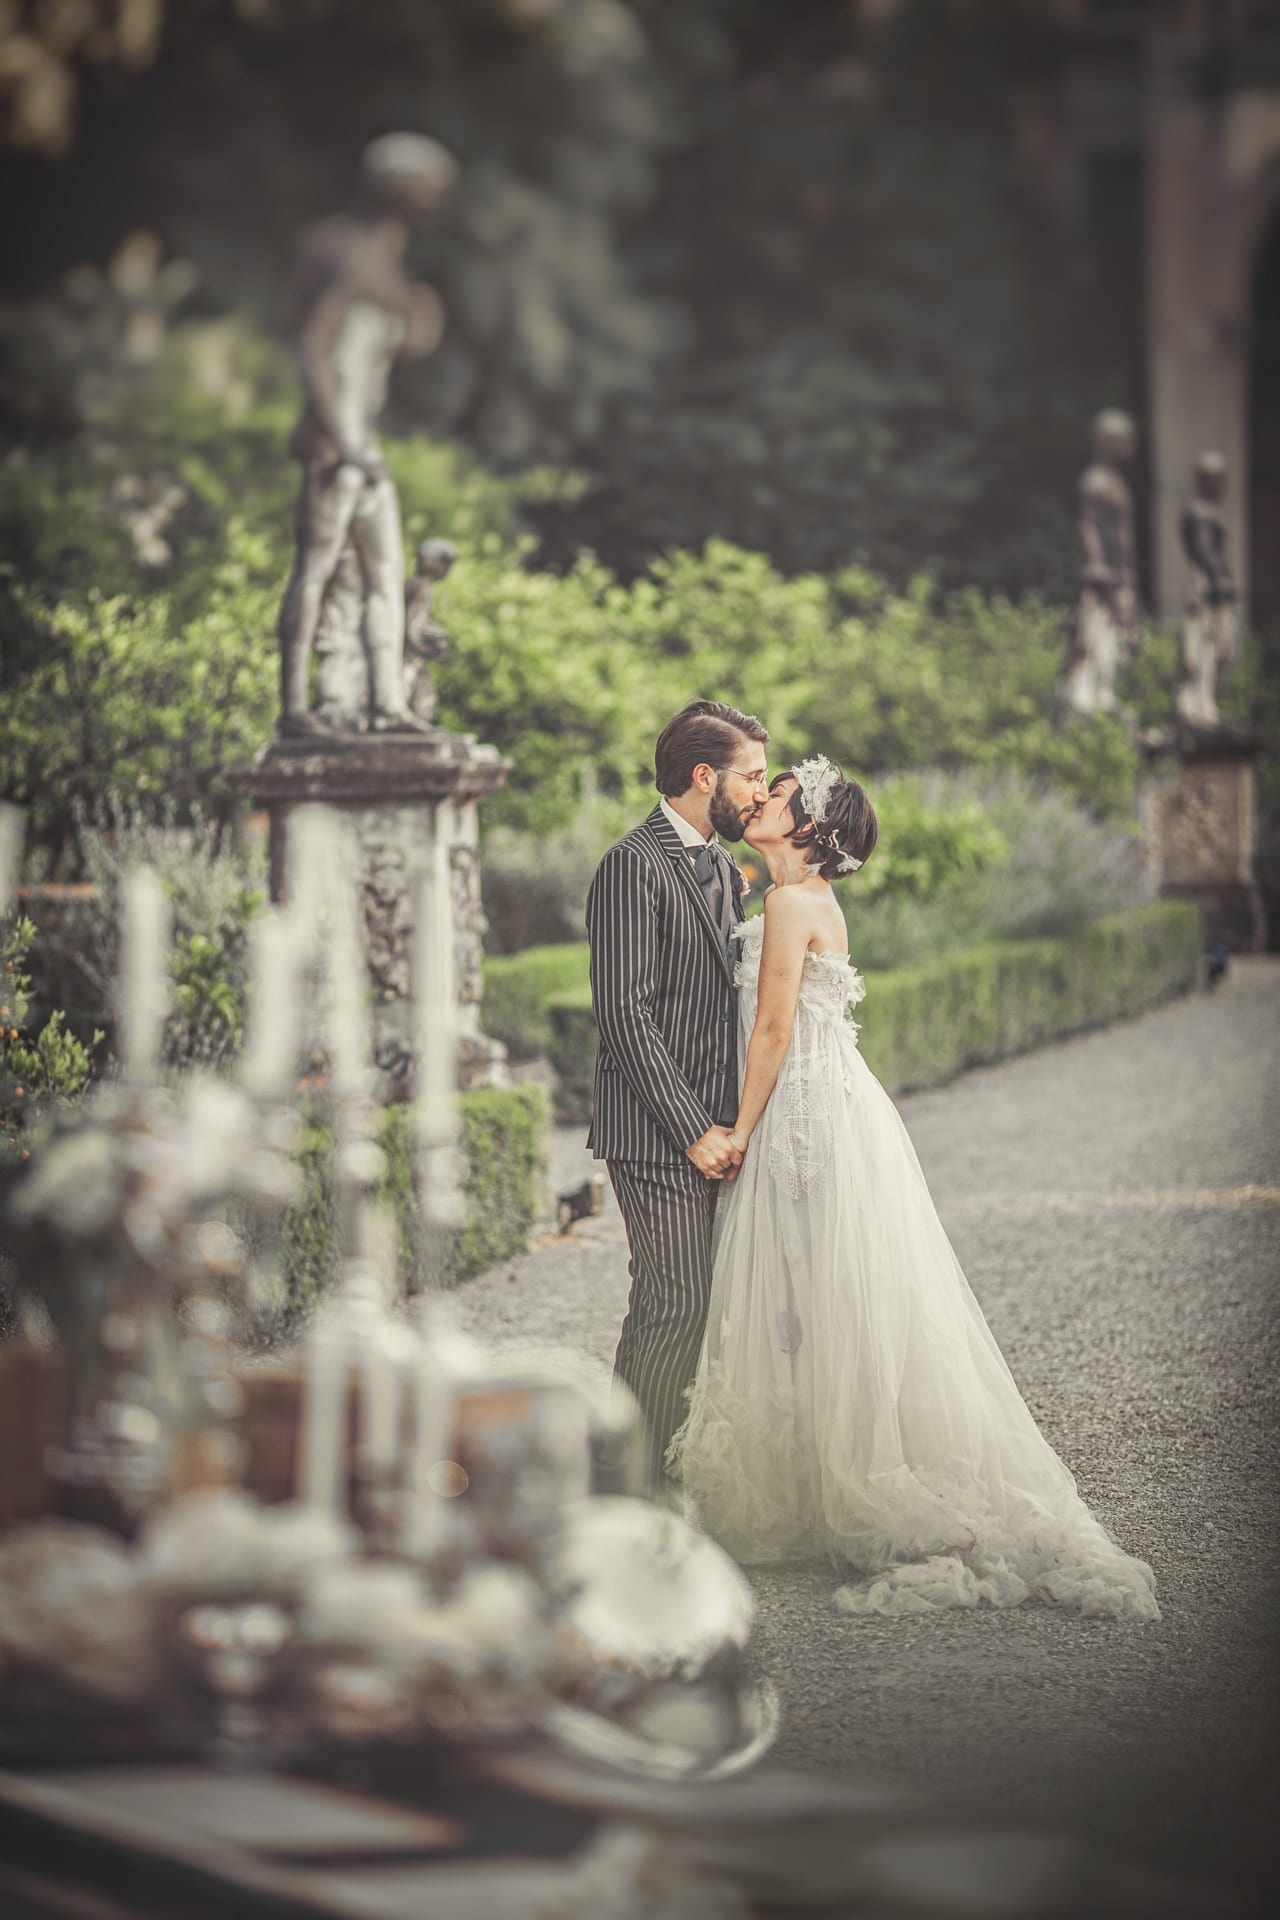 https://righiphotography-com.s3.eu-central-1.amazonaws.com/wp-content/uploads/2020/02/02183216/Wedding-Photo-Perfect-Mix-Studio-Fotografico-Righi-RIGHI-124.jpg